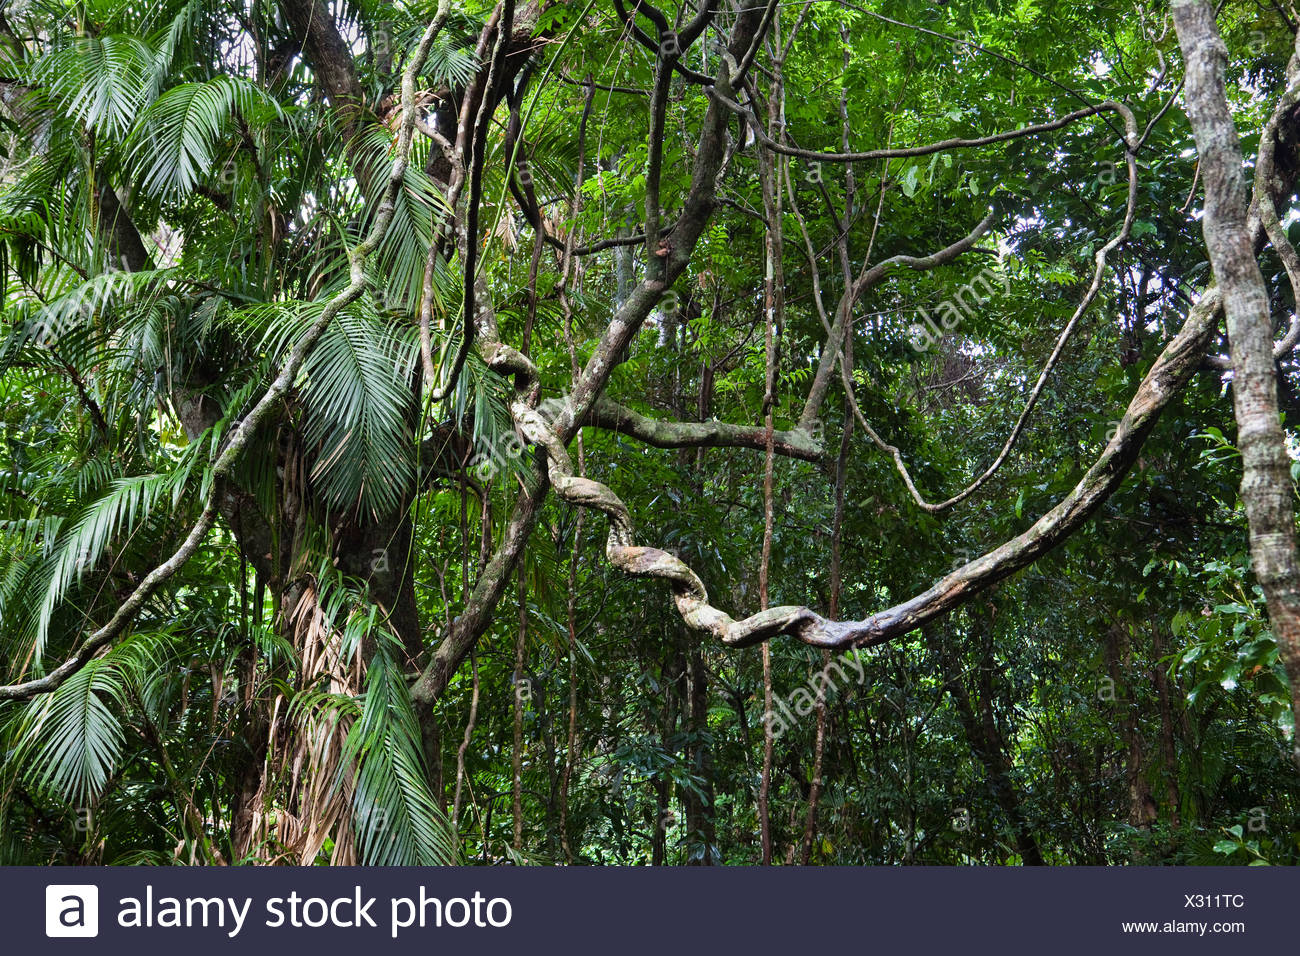 Lianas in the rainforest, Daintree National Park, North Queensland, Australia - Stock Image